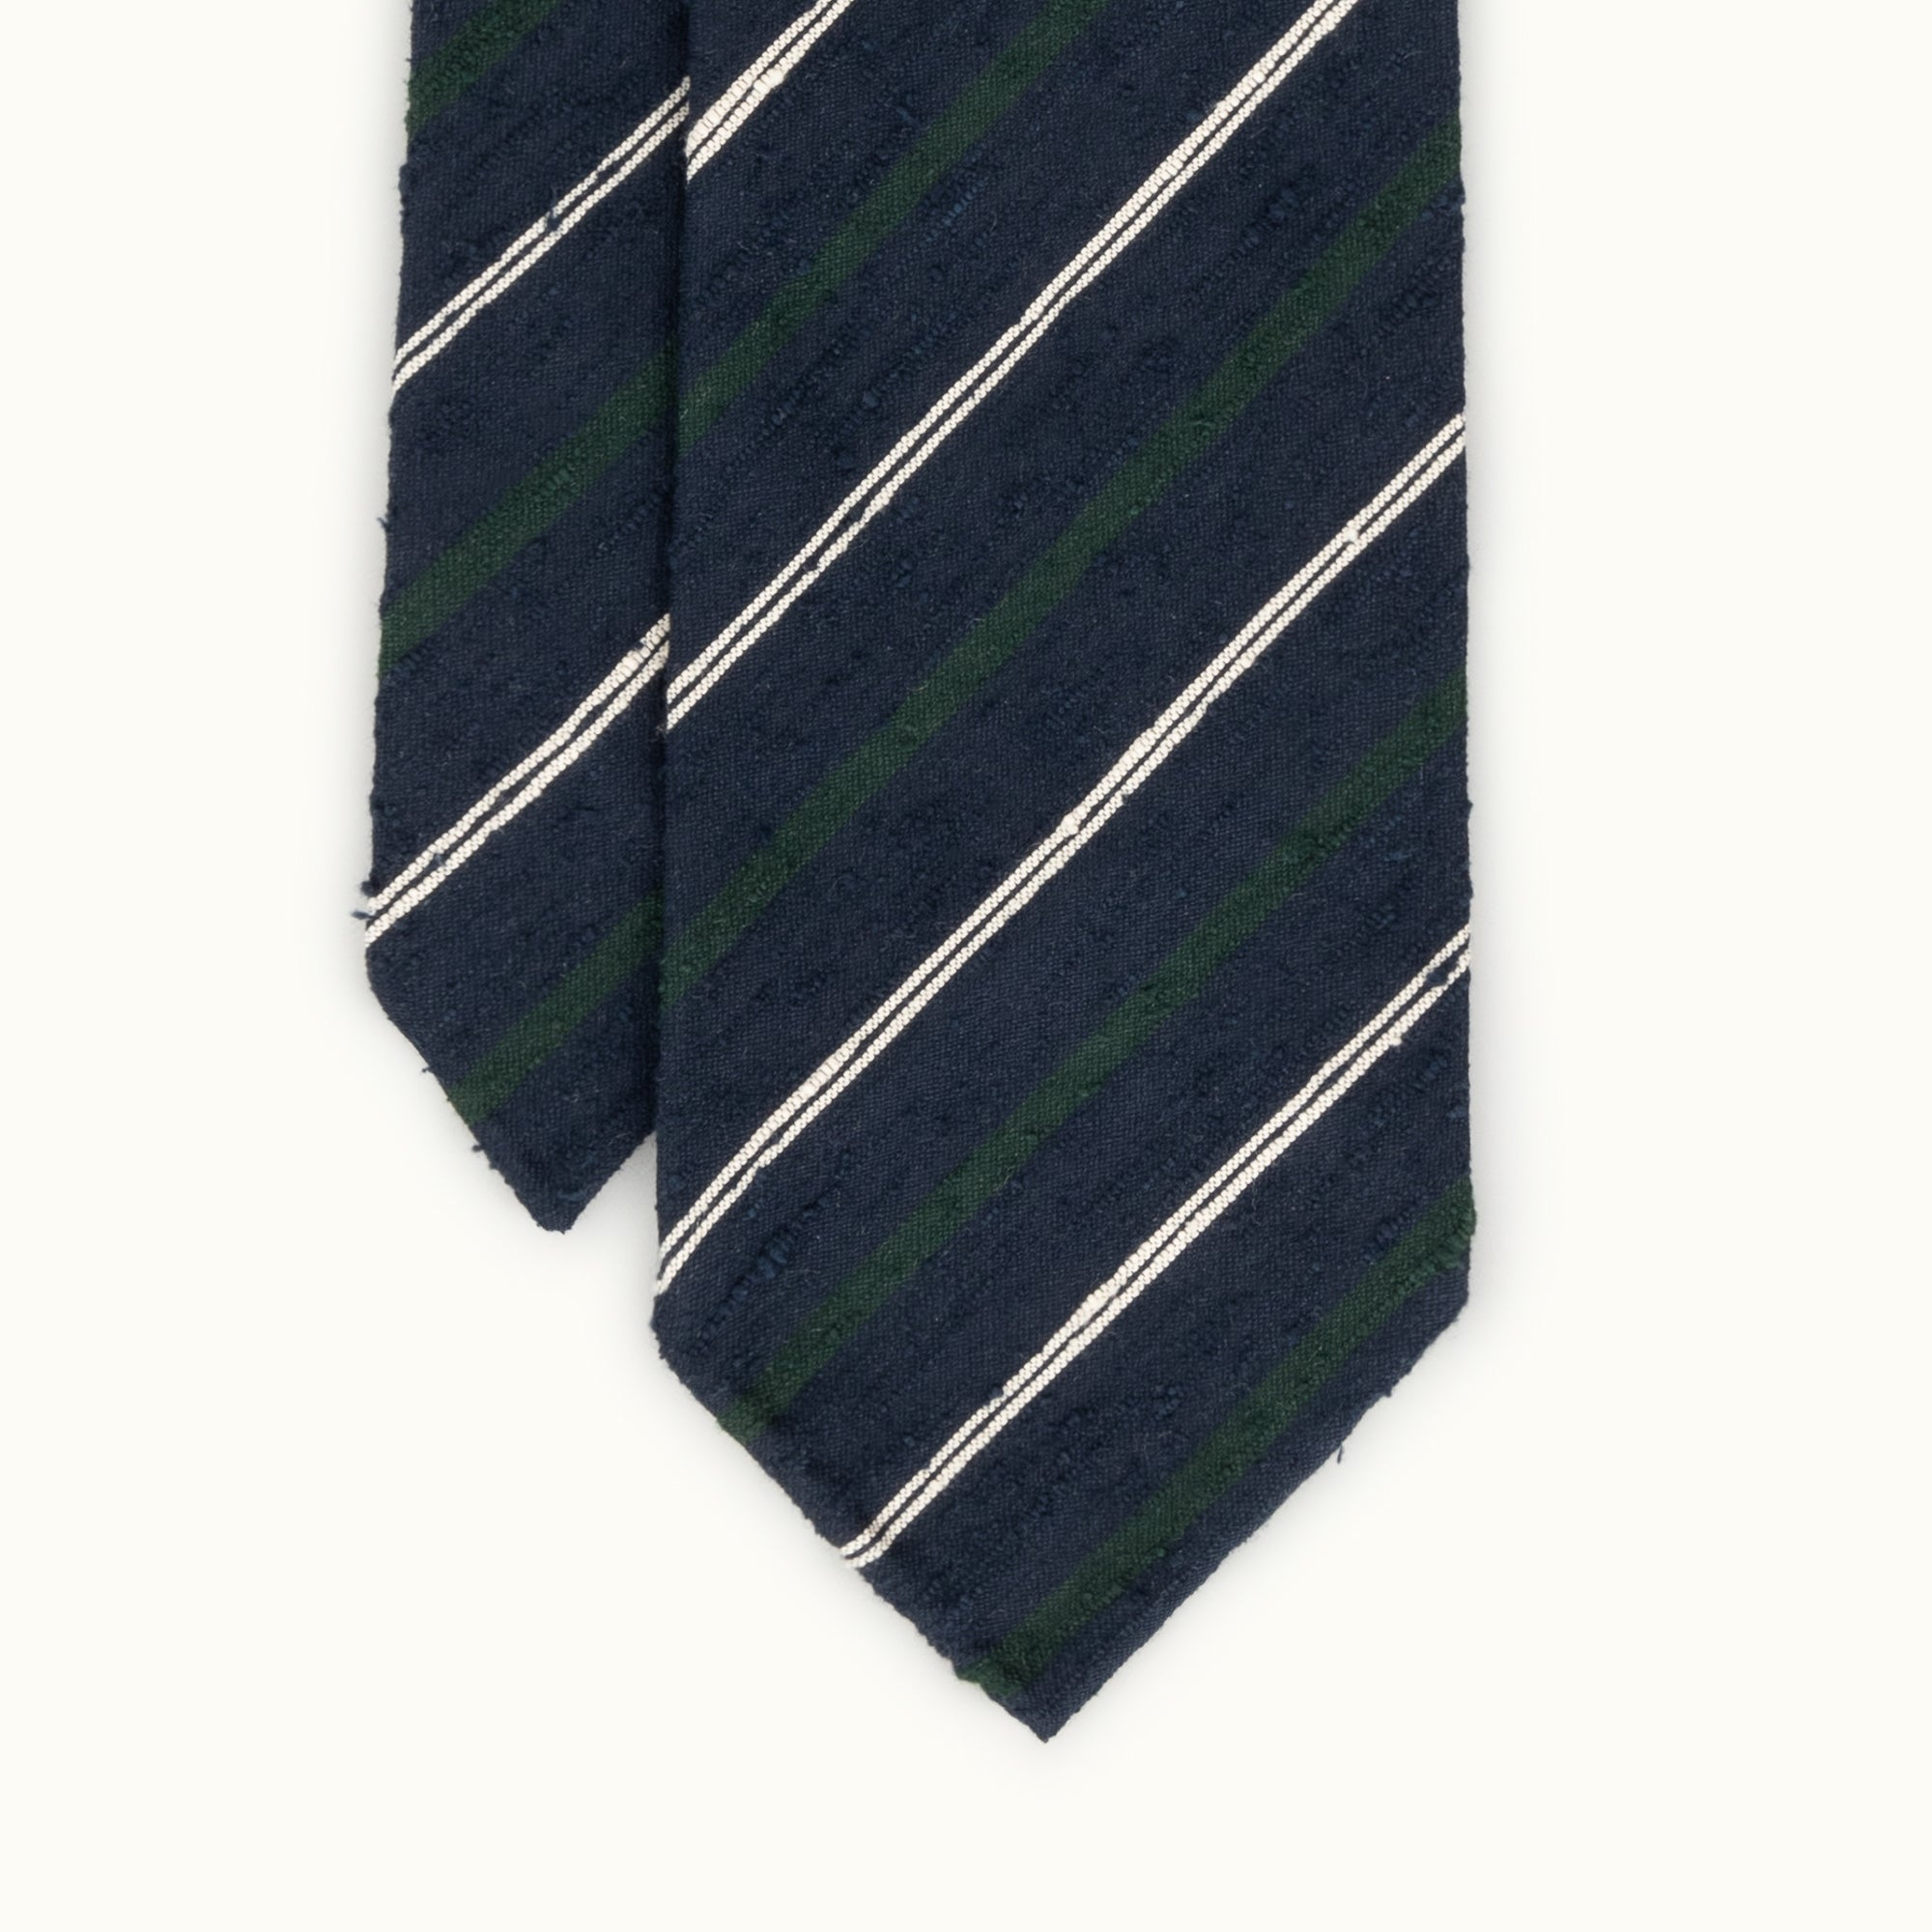 Navy, Green & White Fine Stripe Shantung Silk Tie